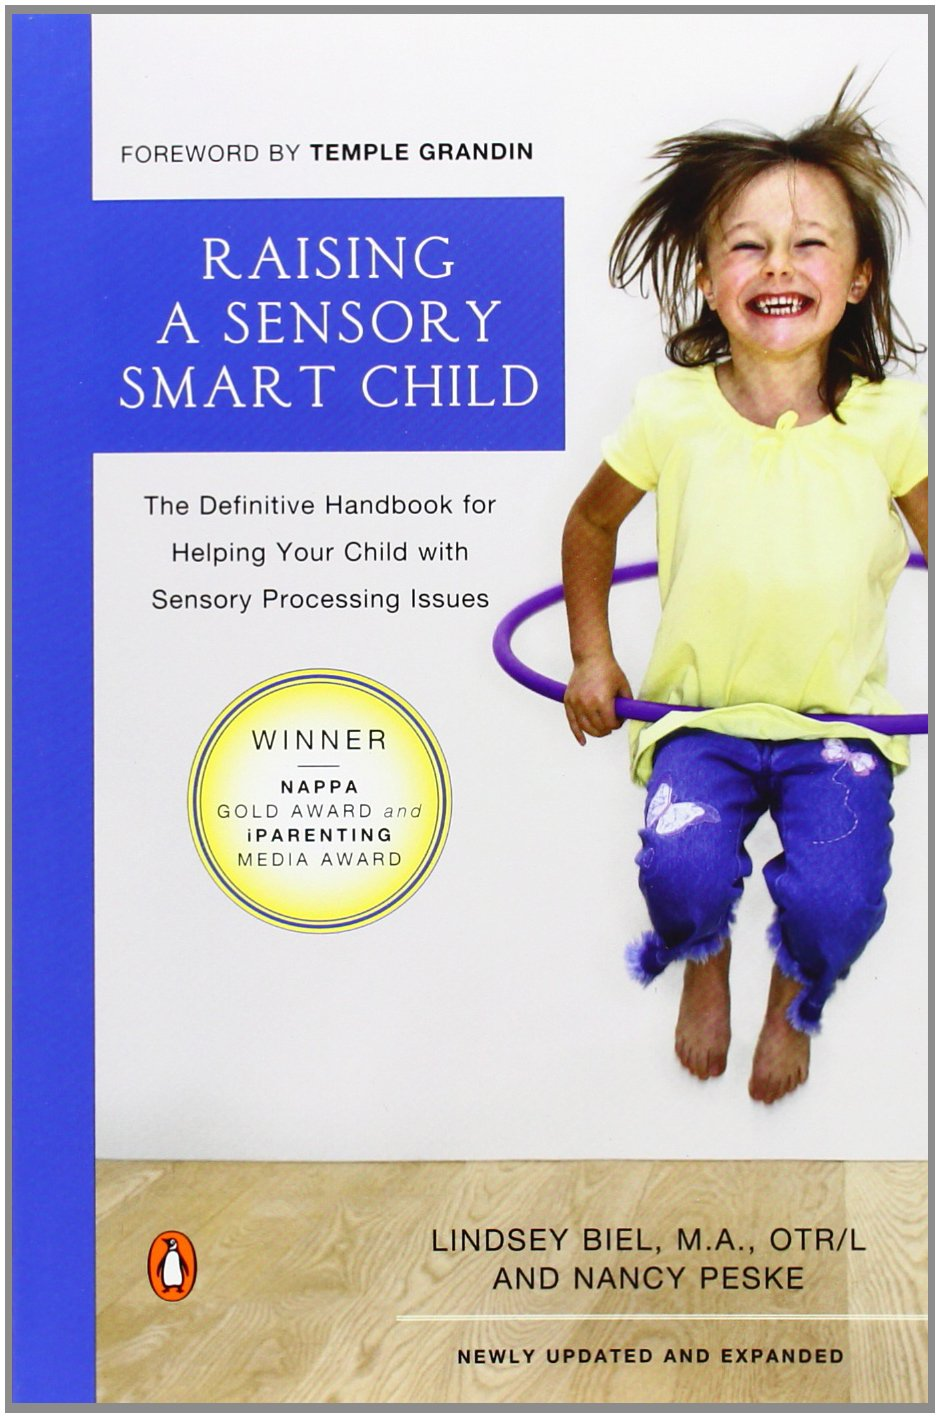 Raising Sensory Smart Child Definitive